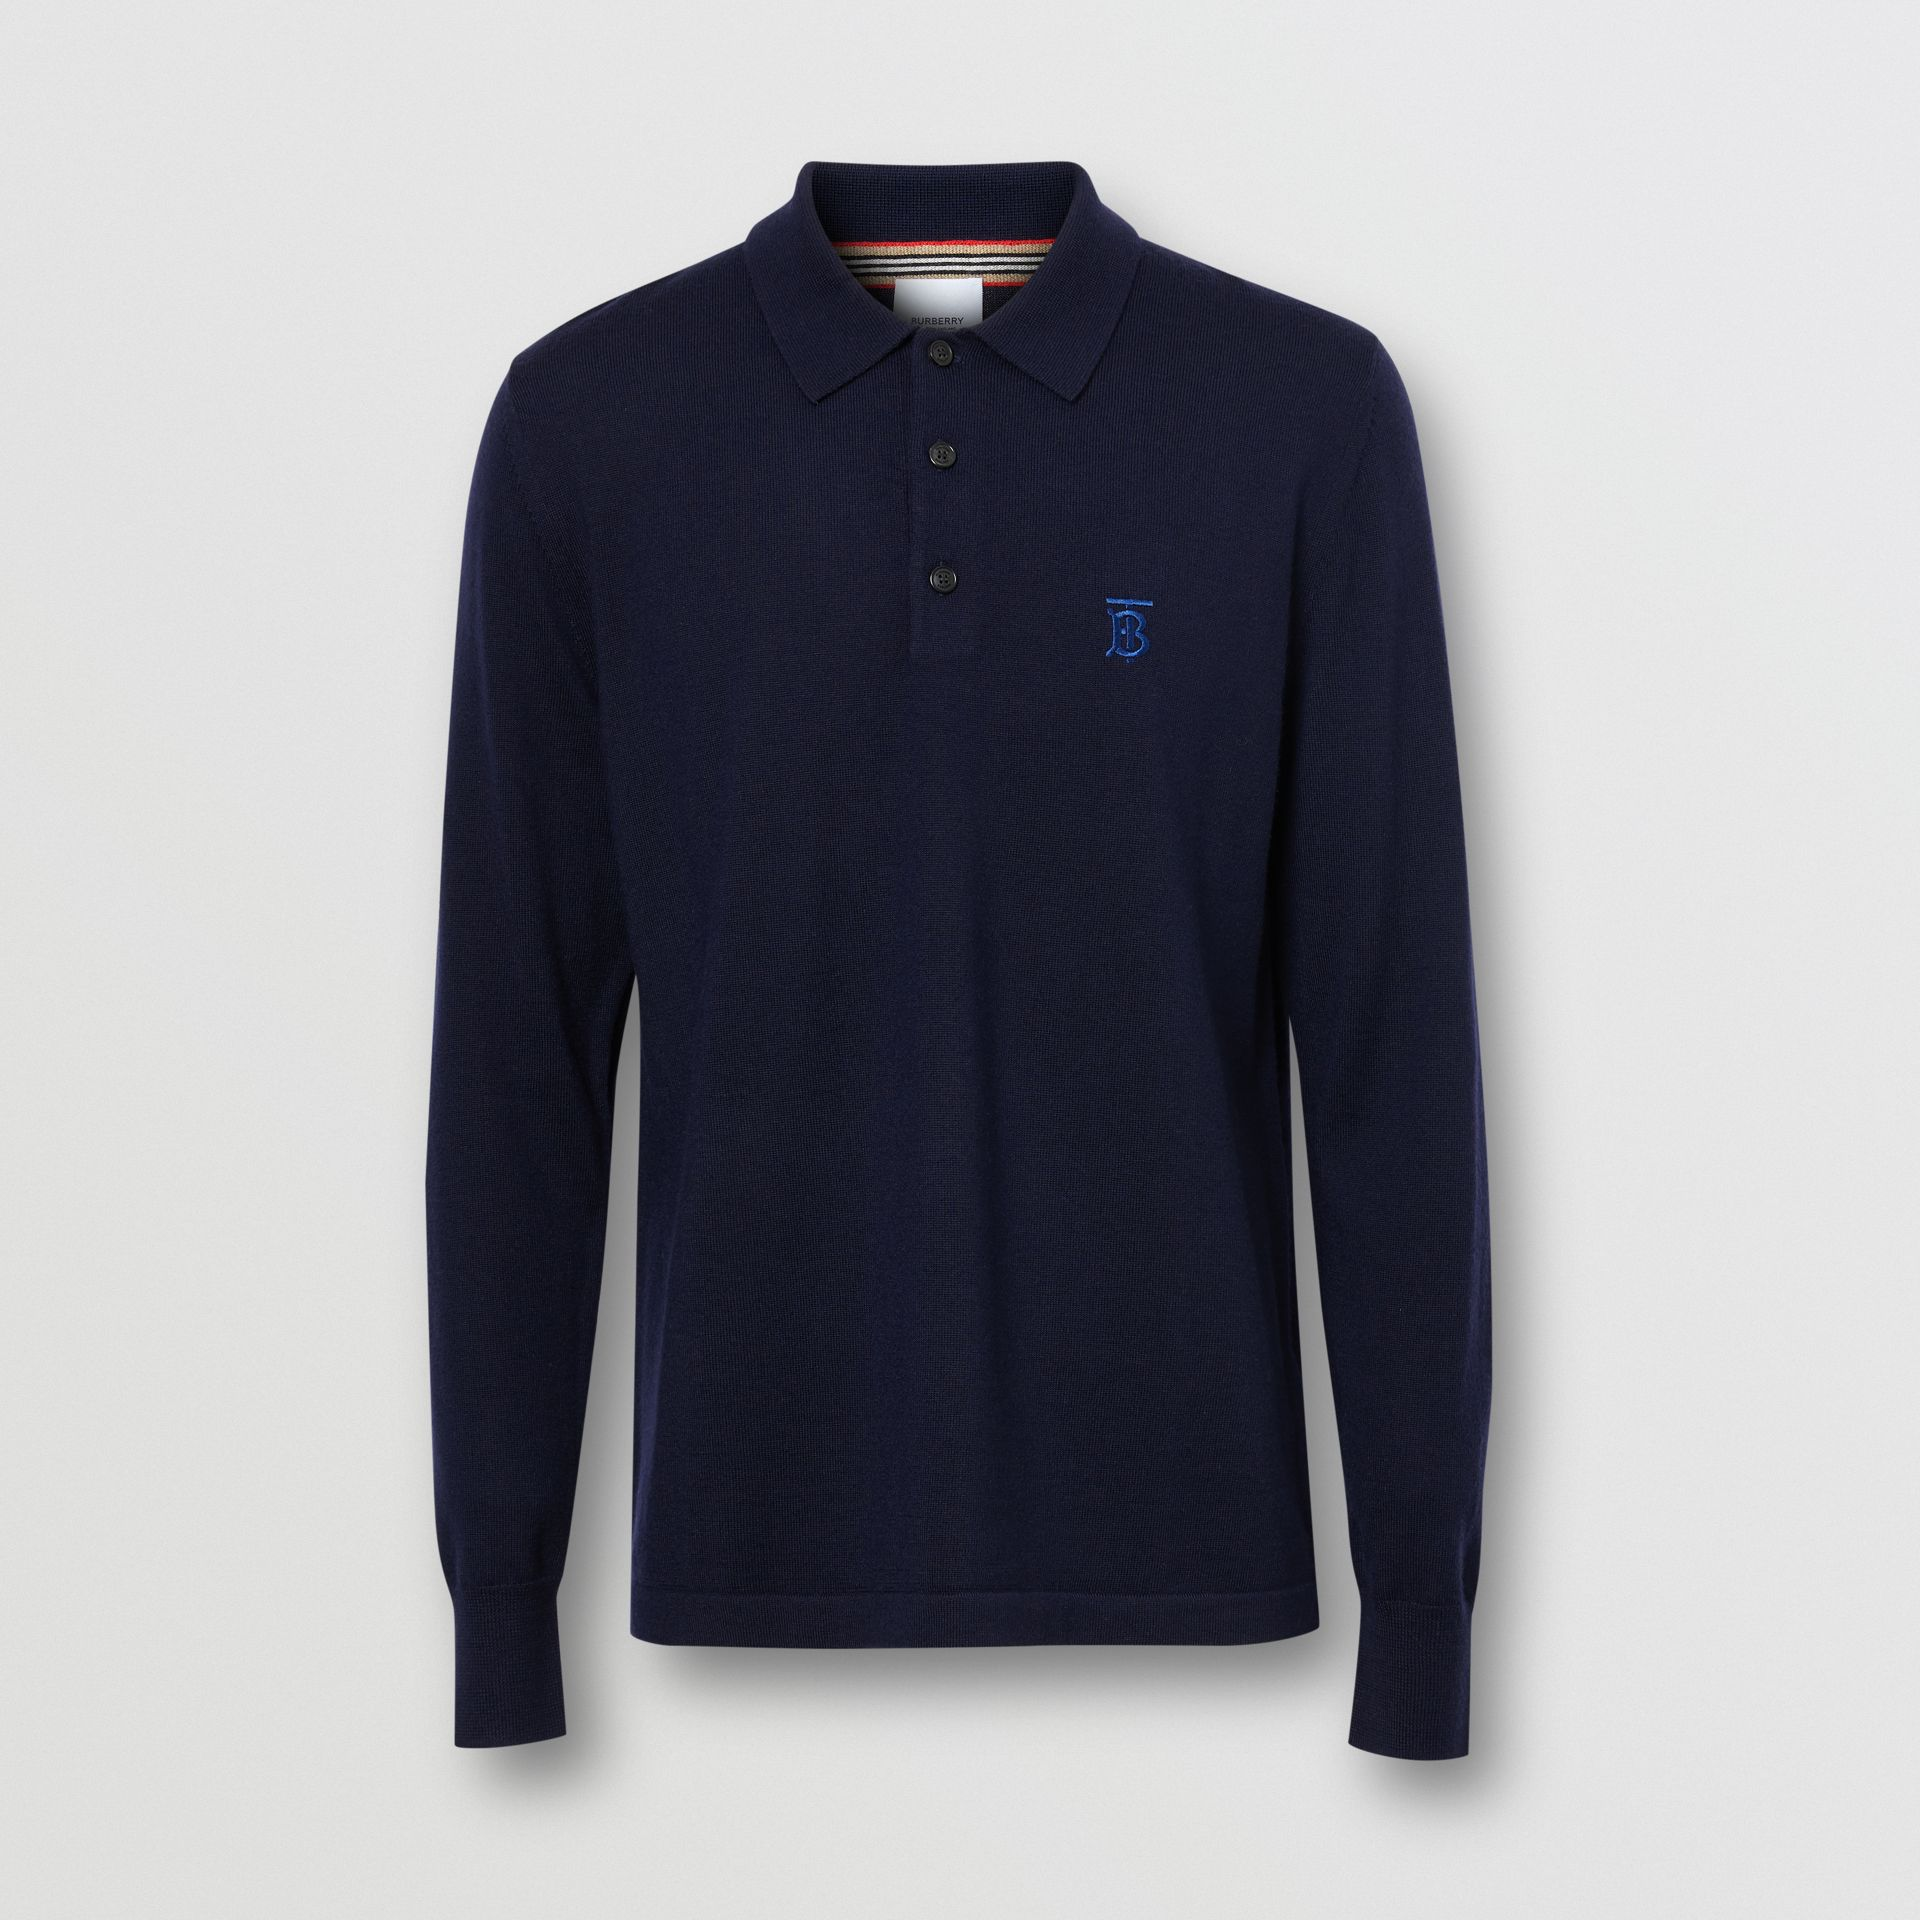 Long-sleeve Monogram Motif Merino Wool Polo Shirt in Navy - Men | Burberry Canada - gallery image 3